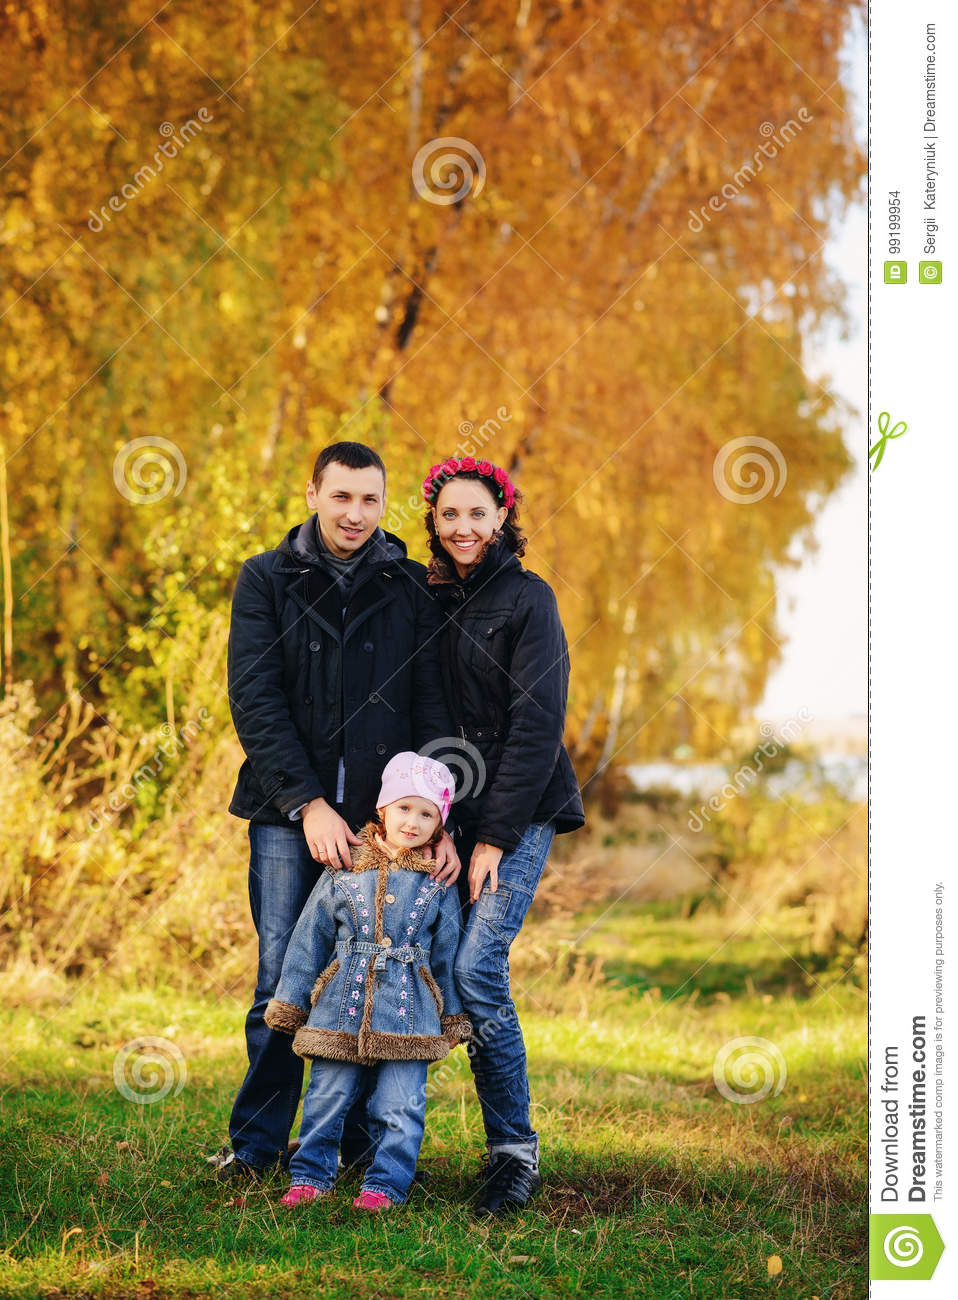 Young family, parents with small children in golden autumn city park